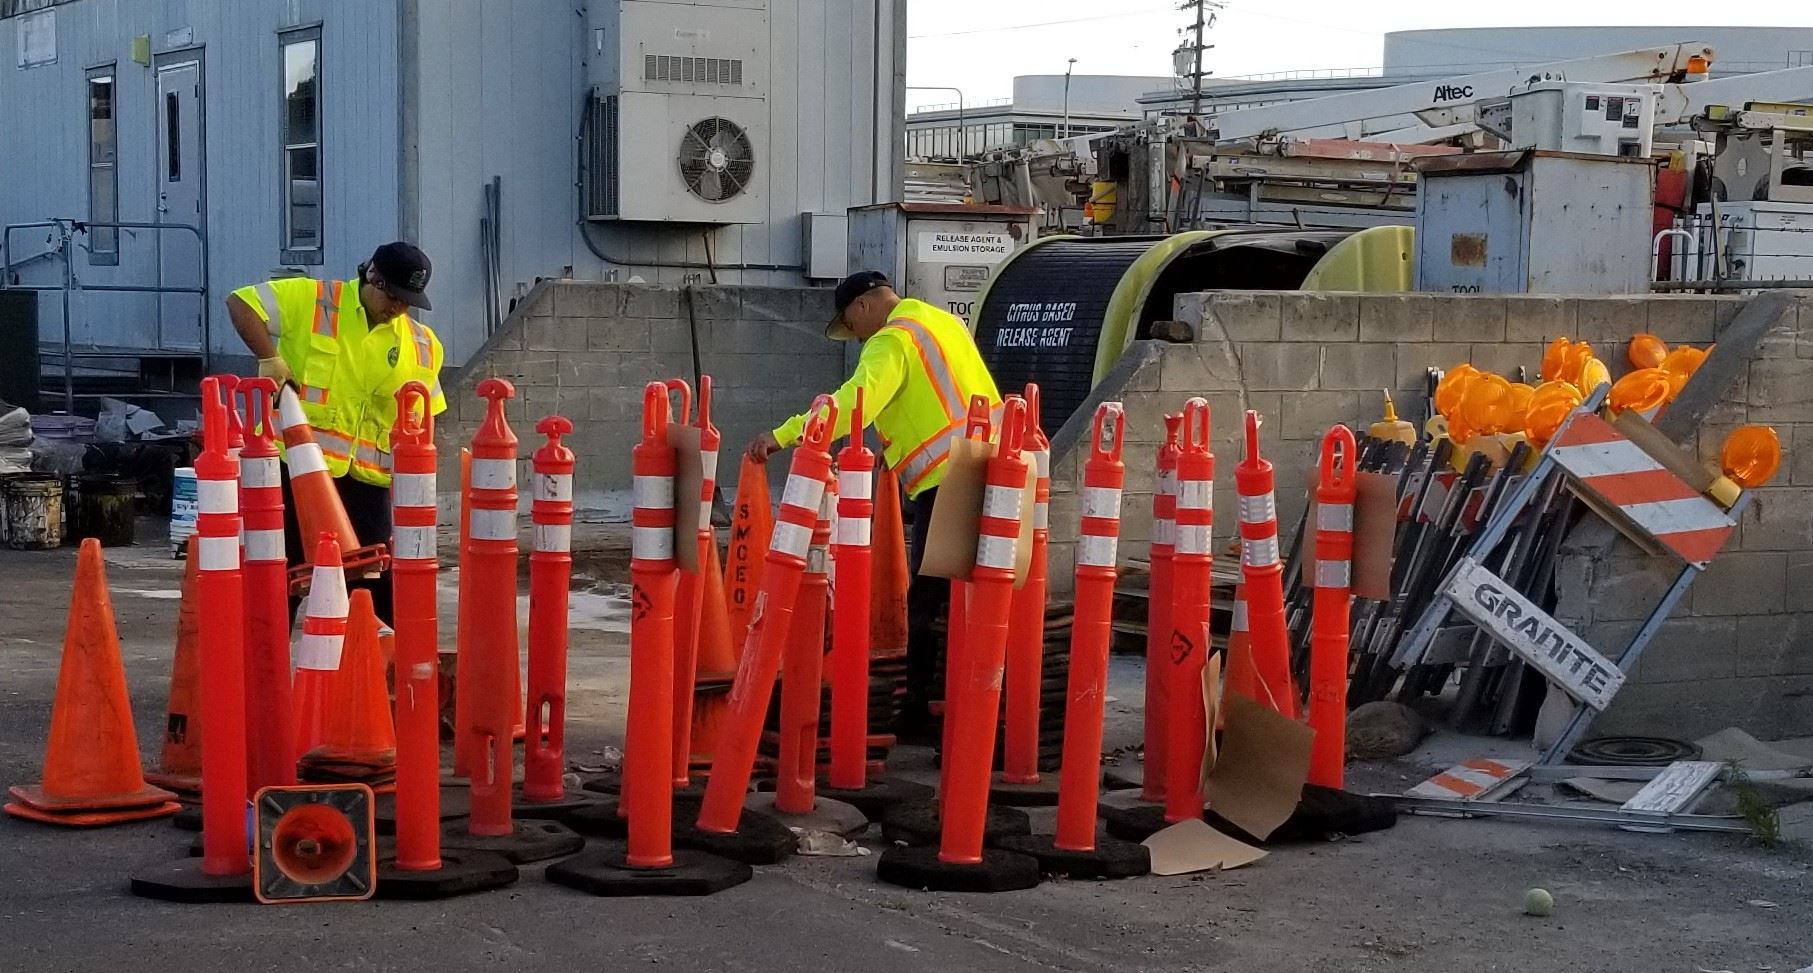 San Mateo Public Works Corp Yard - May 13 2019